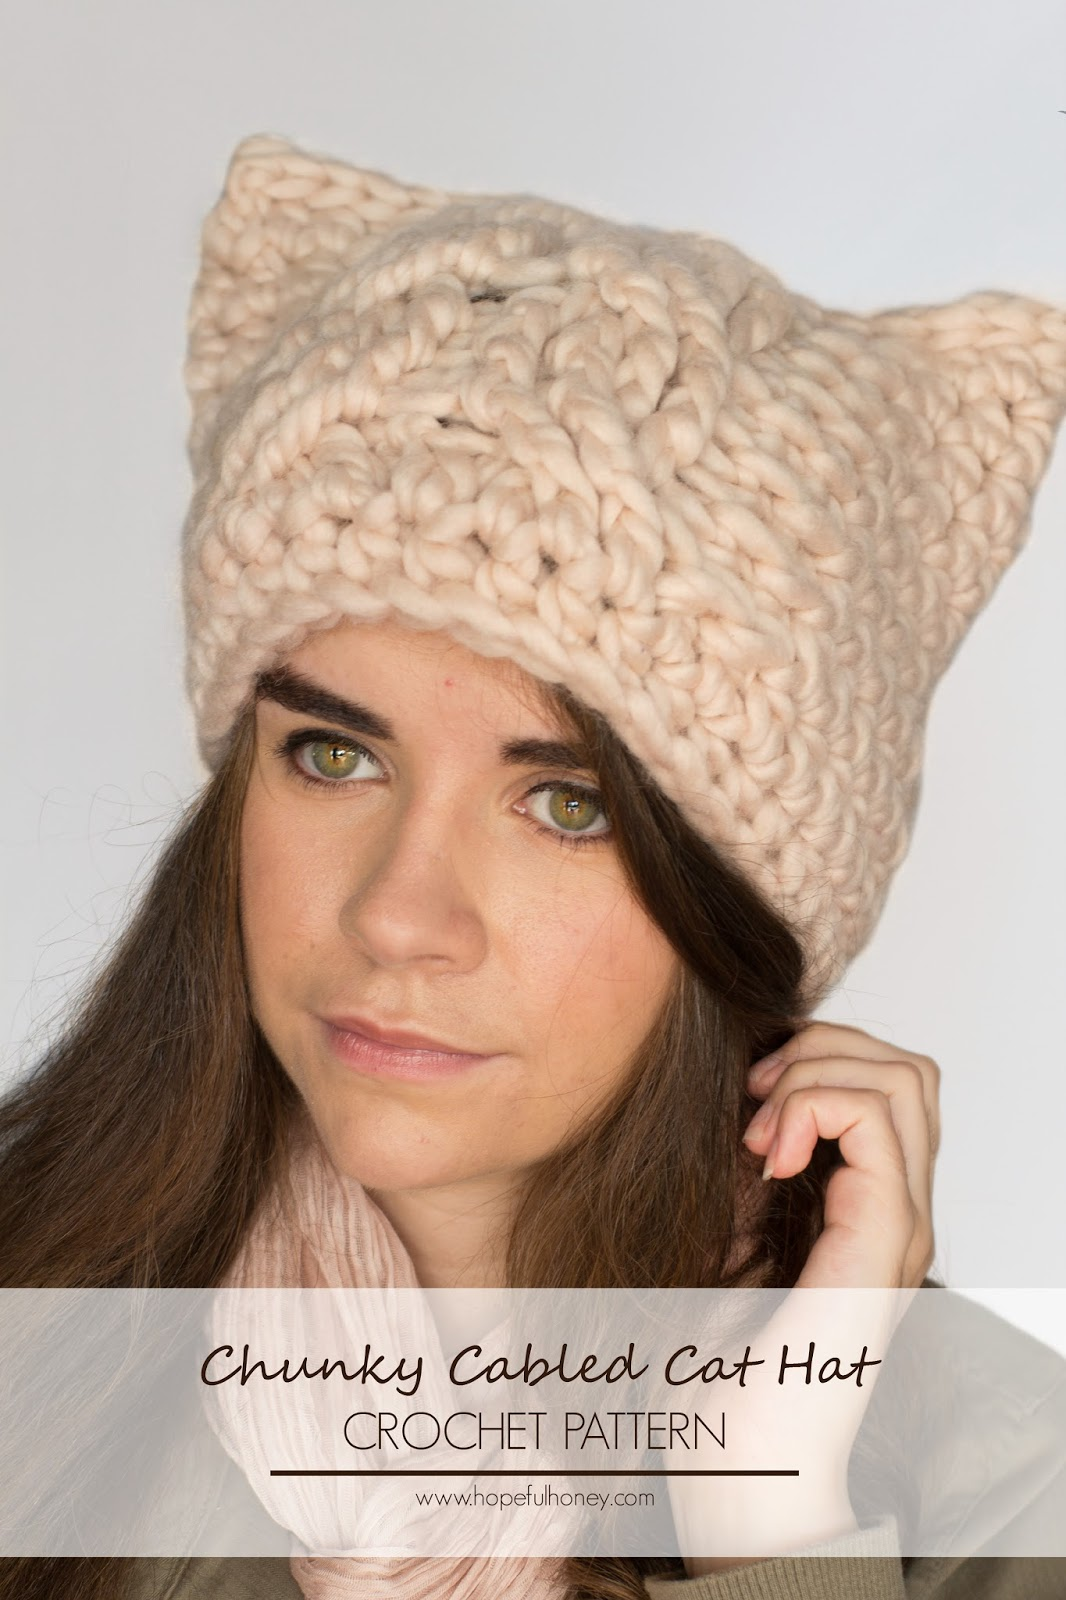 Crochet Pattern For A Hat For A Cat : Hopeful Honey Craft, Crochet, Create: Chunky Cabled Cat ...